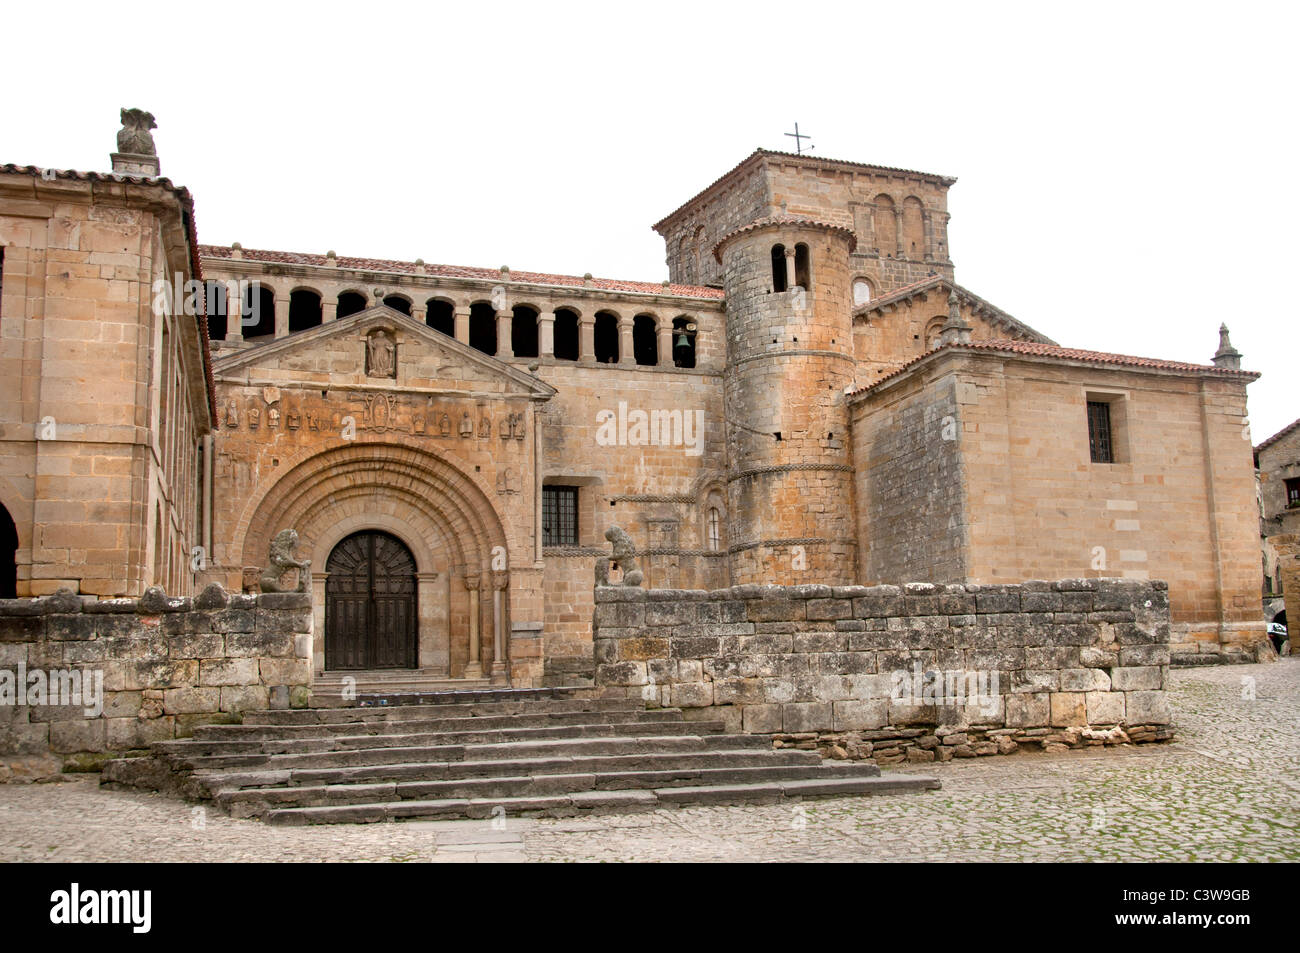 Santillana del Mar Cantabria Spain Spanish town - Stock Image